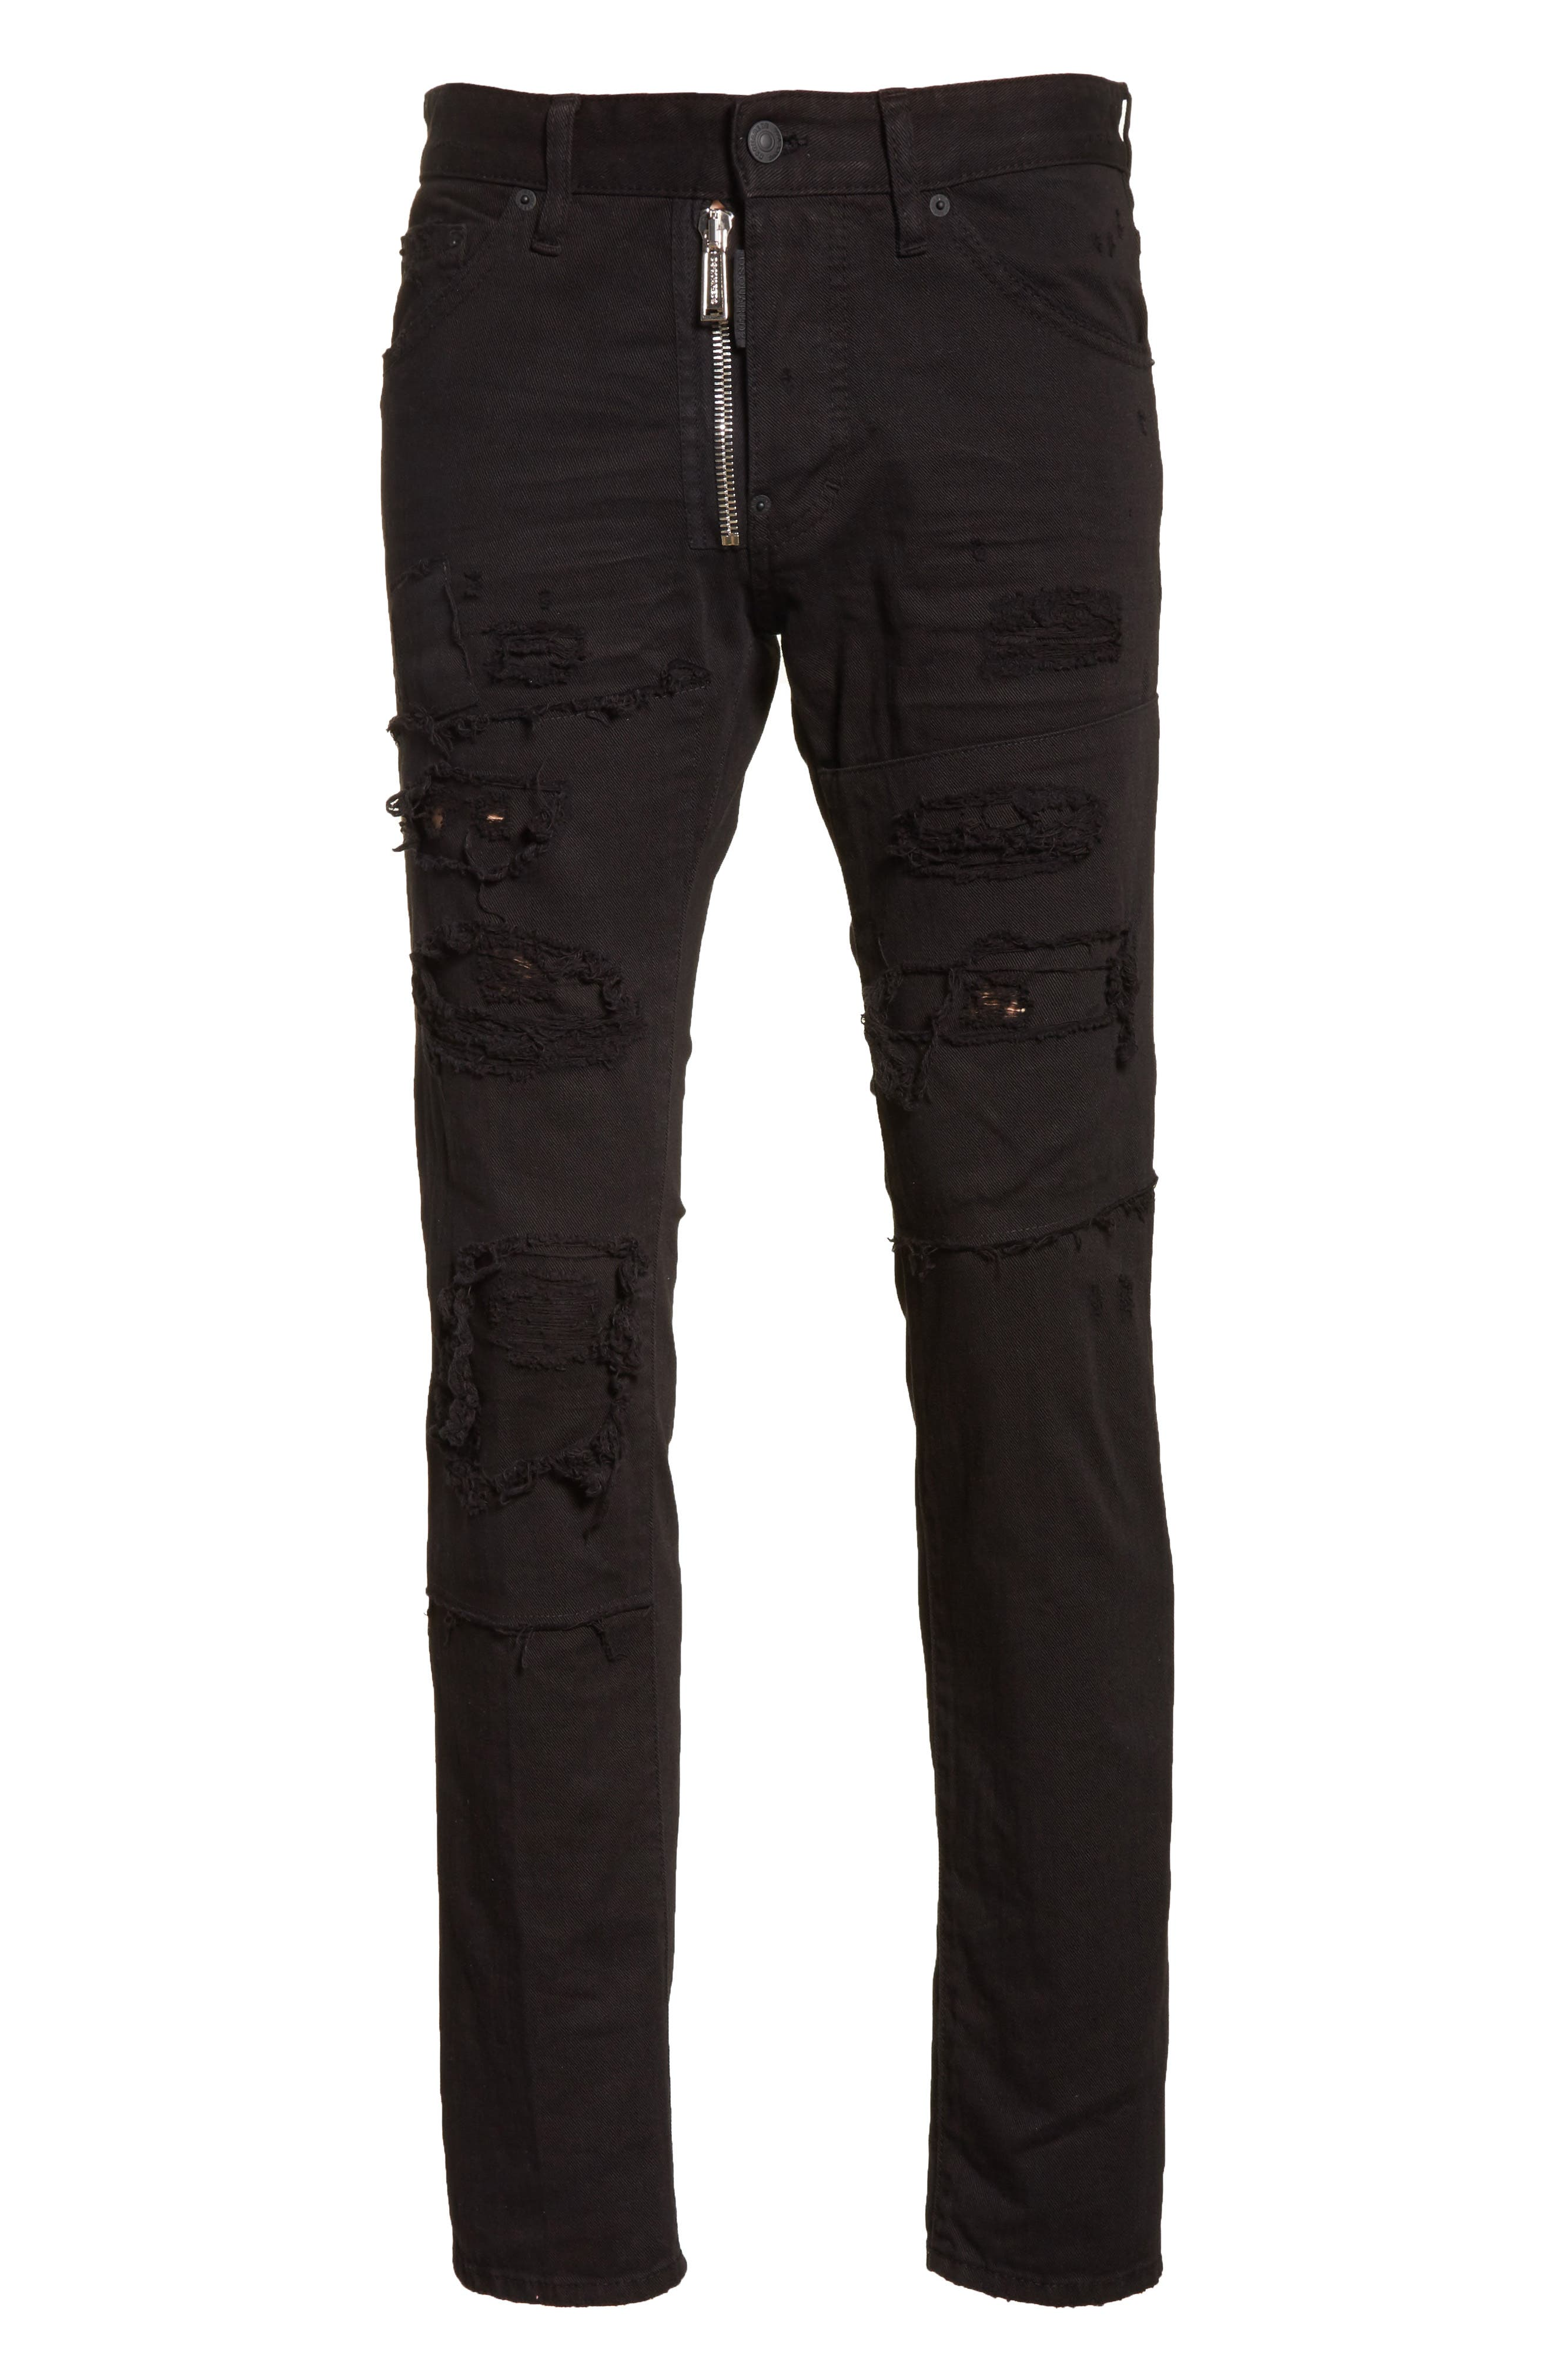 Ripped Washed Cool Guy Jeans,                             Alternate thumbnail 6, color,                             001